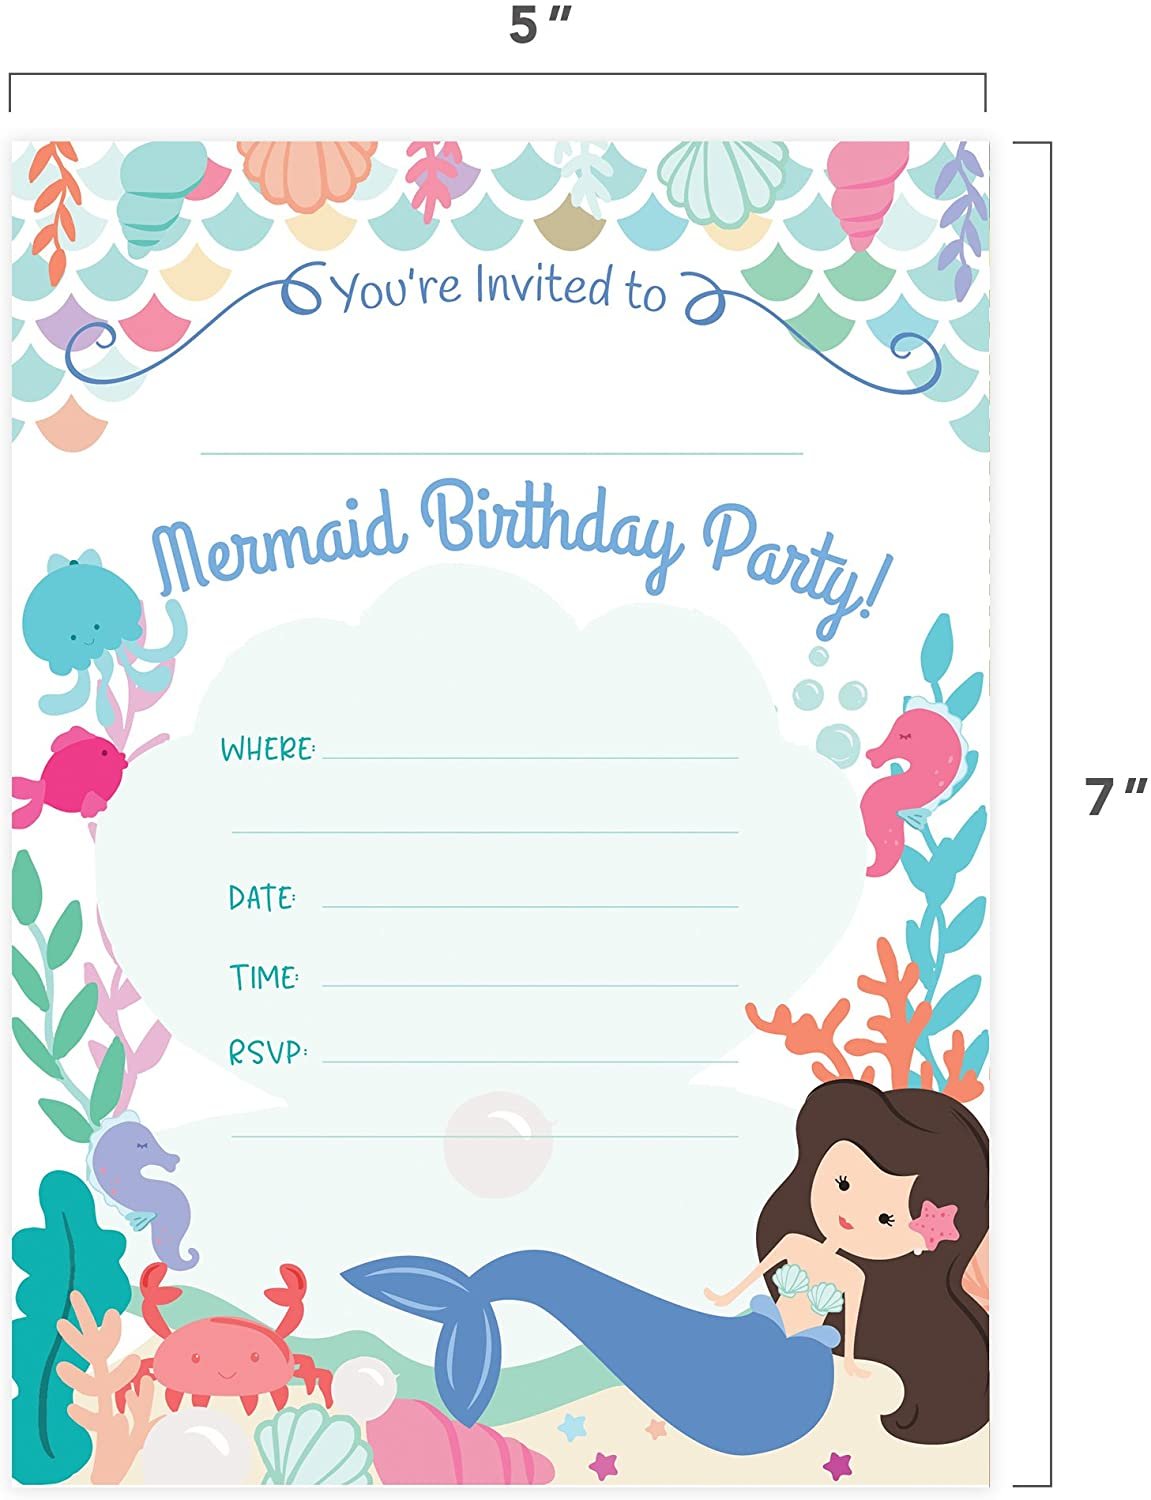 mermaid happy birthday invitations invite cards 25 count with envelopes and seal stickers vinyl girls kids party 25ct